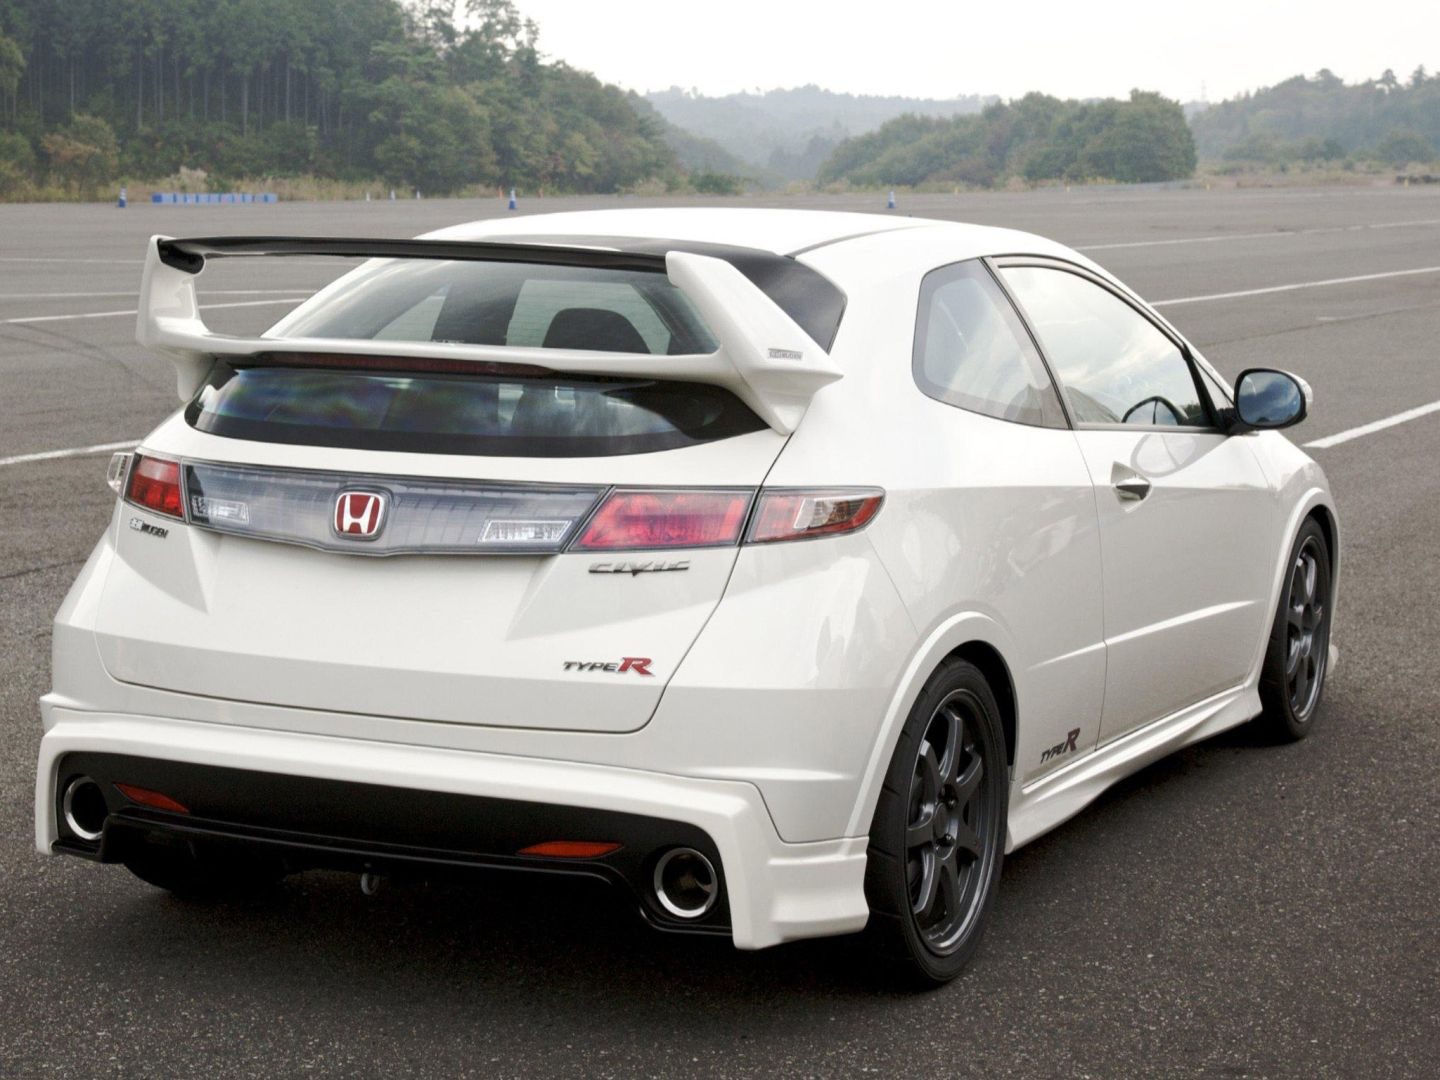 ... HONDA Civic Type-R Mugen (2009 - 2010) ...